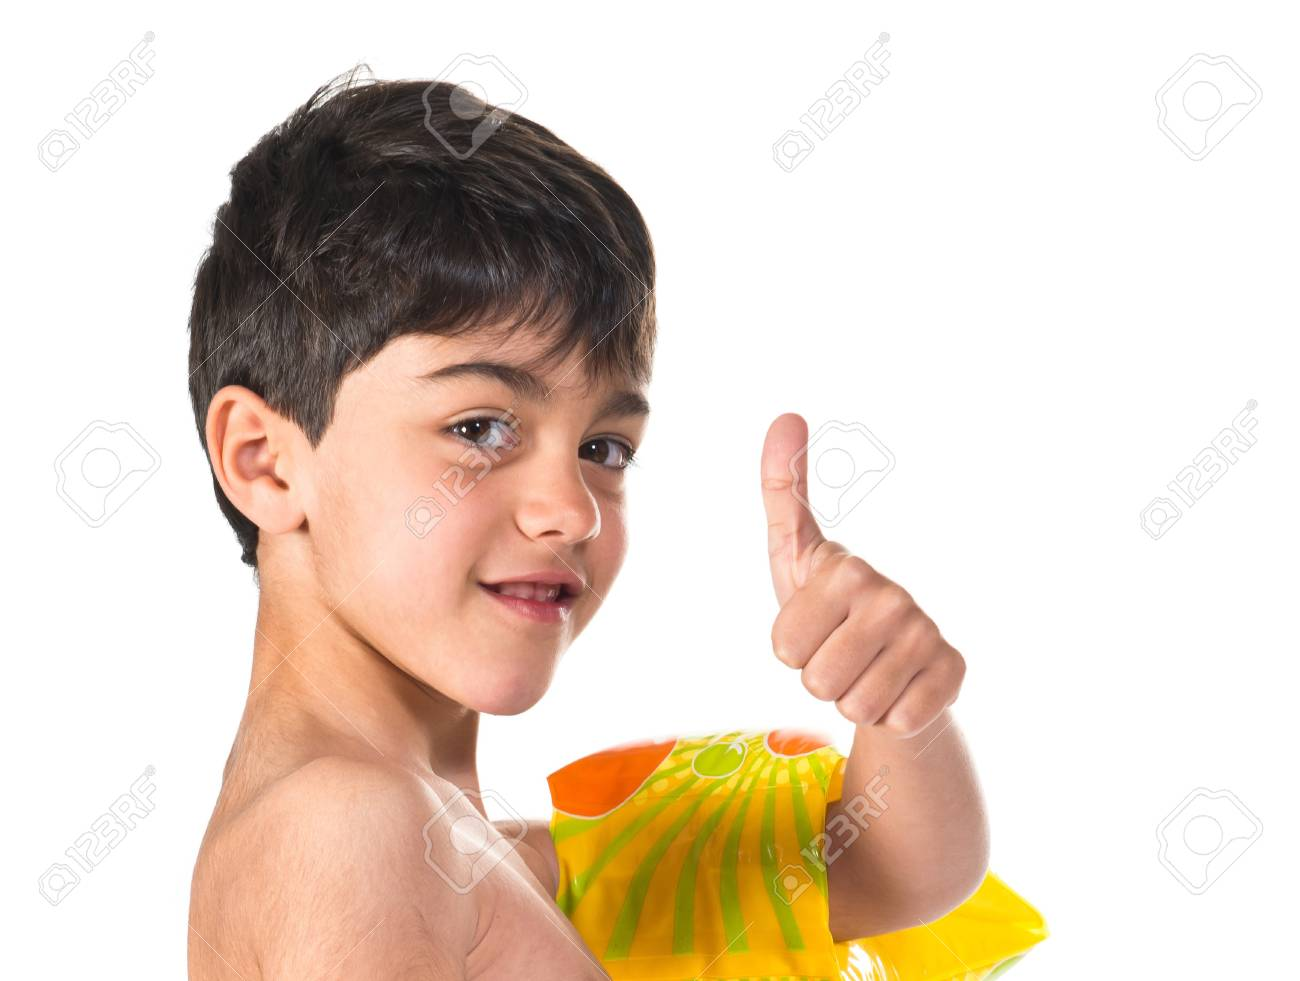 25586f2415 Boy In Swimsuit Making Ok Gesture Stock Photo, Picture And Royalty ...